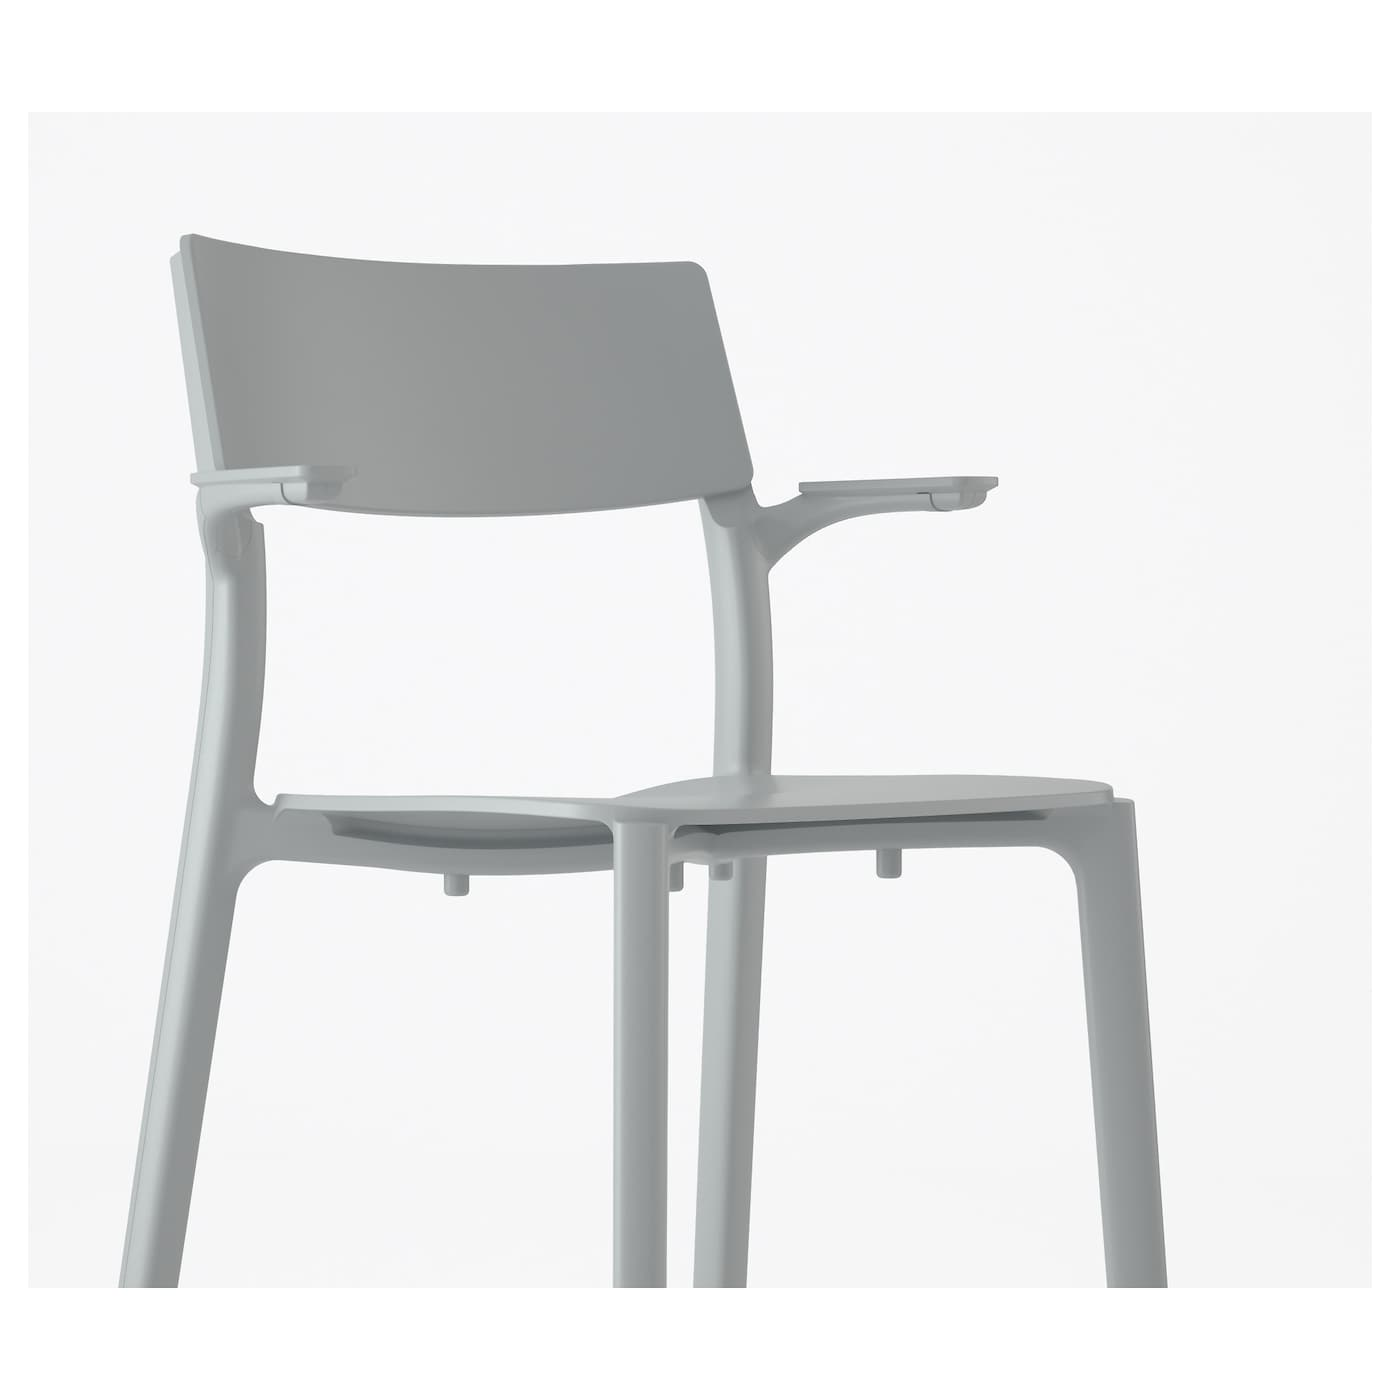 IKEA JANINGE chair with armrests Can be hung with the armrests on a table top for easy cleaning.